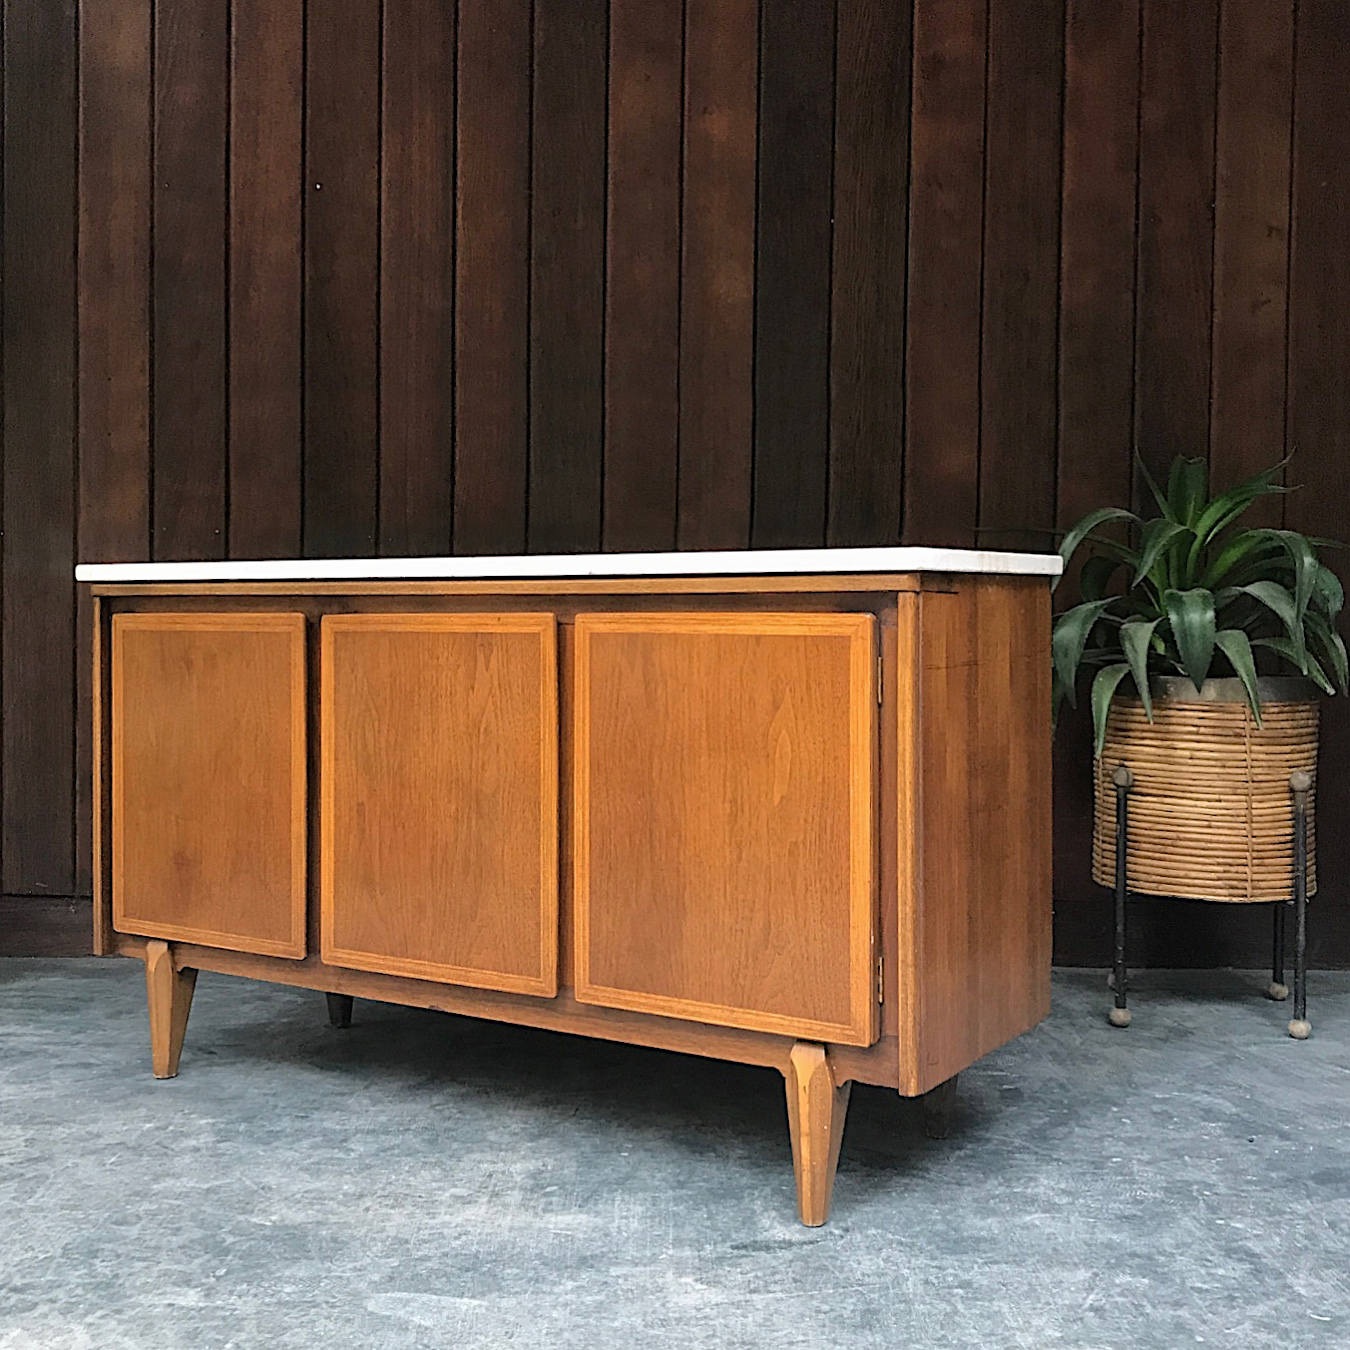 Mid century modern has been having quite the moment, and rather than scour through Craigslist ads every weekend searching for the best finds, I prefer to scroll through the wares handpicked by Tarly of BrainWashington. (Image: Courtesy BrainWashington)